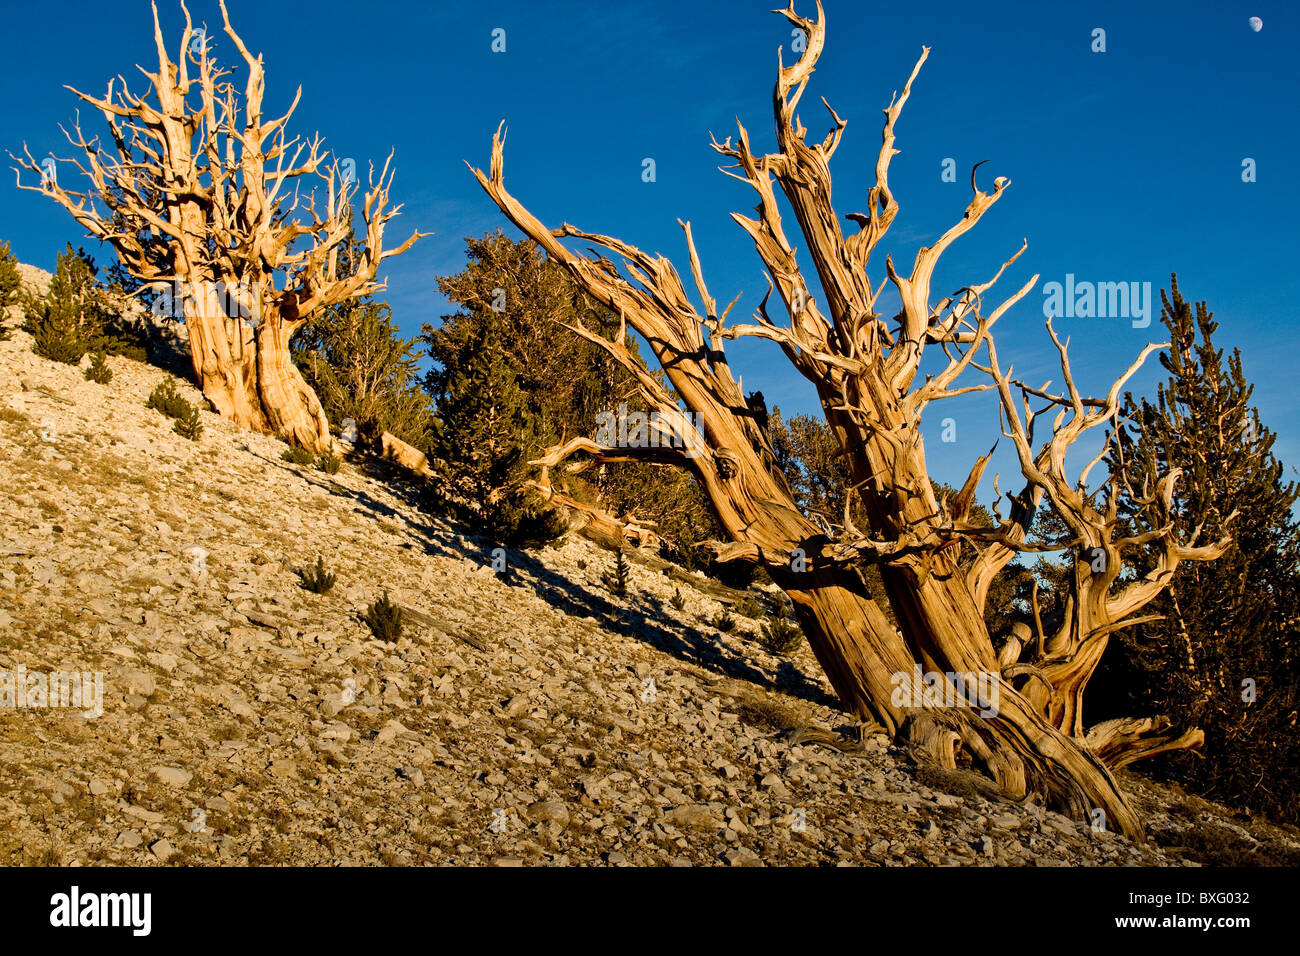 Ancient Bristlecone Pine Trees, White Mountains of California. - Stock Image